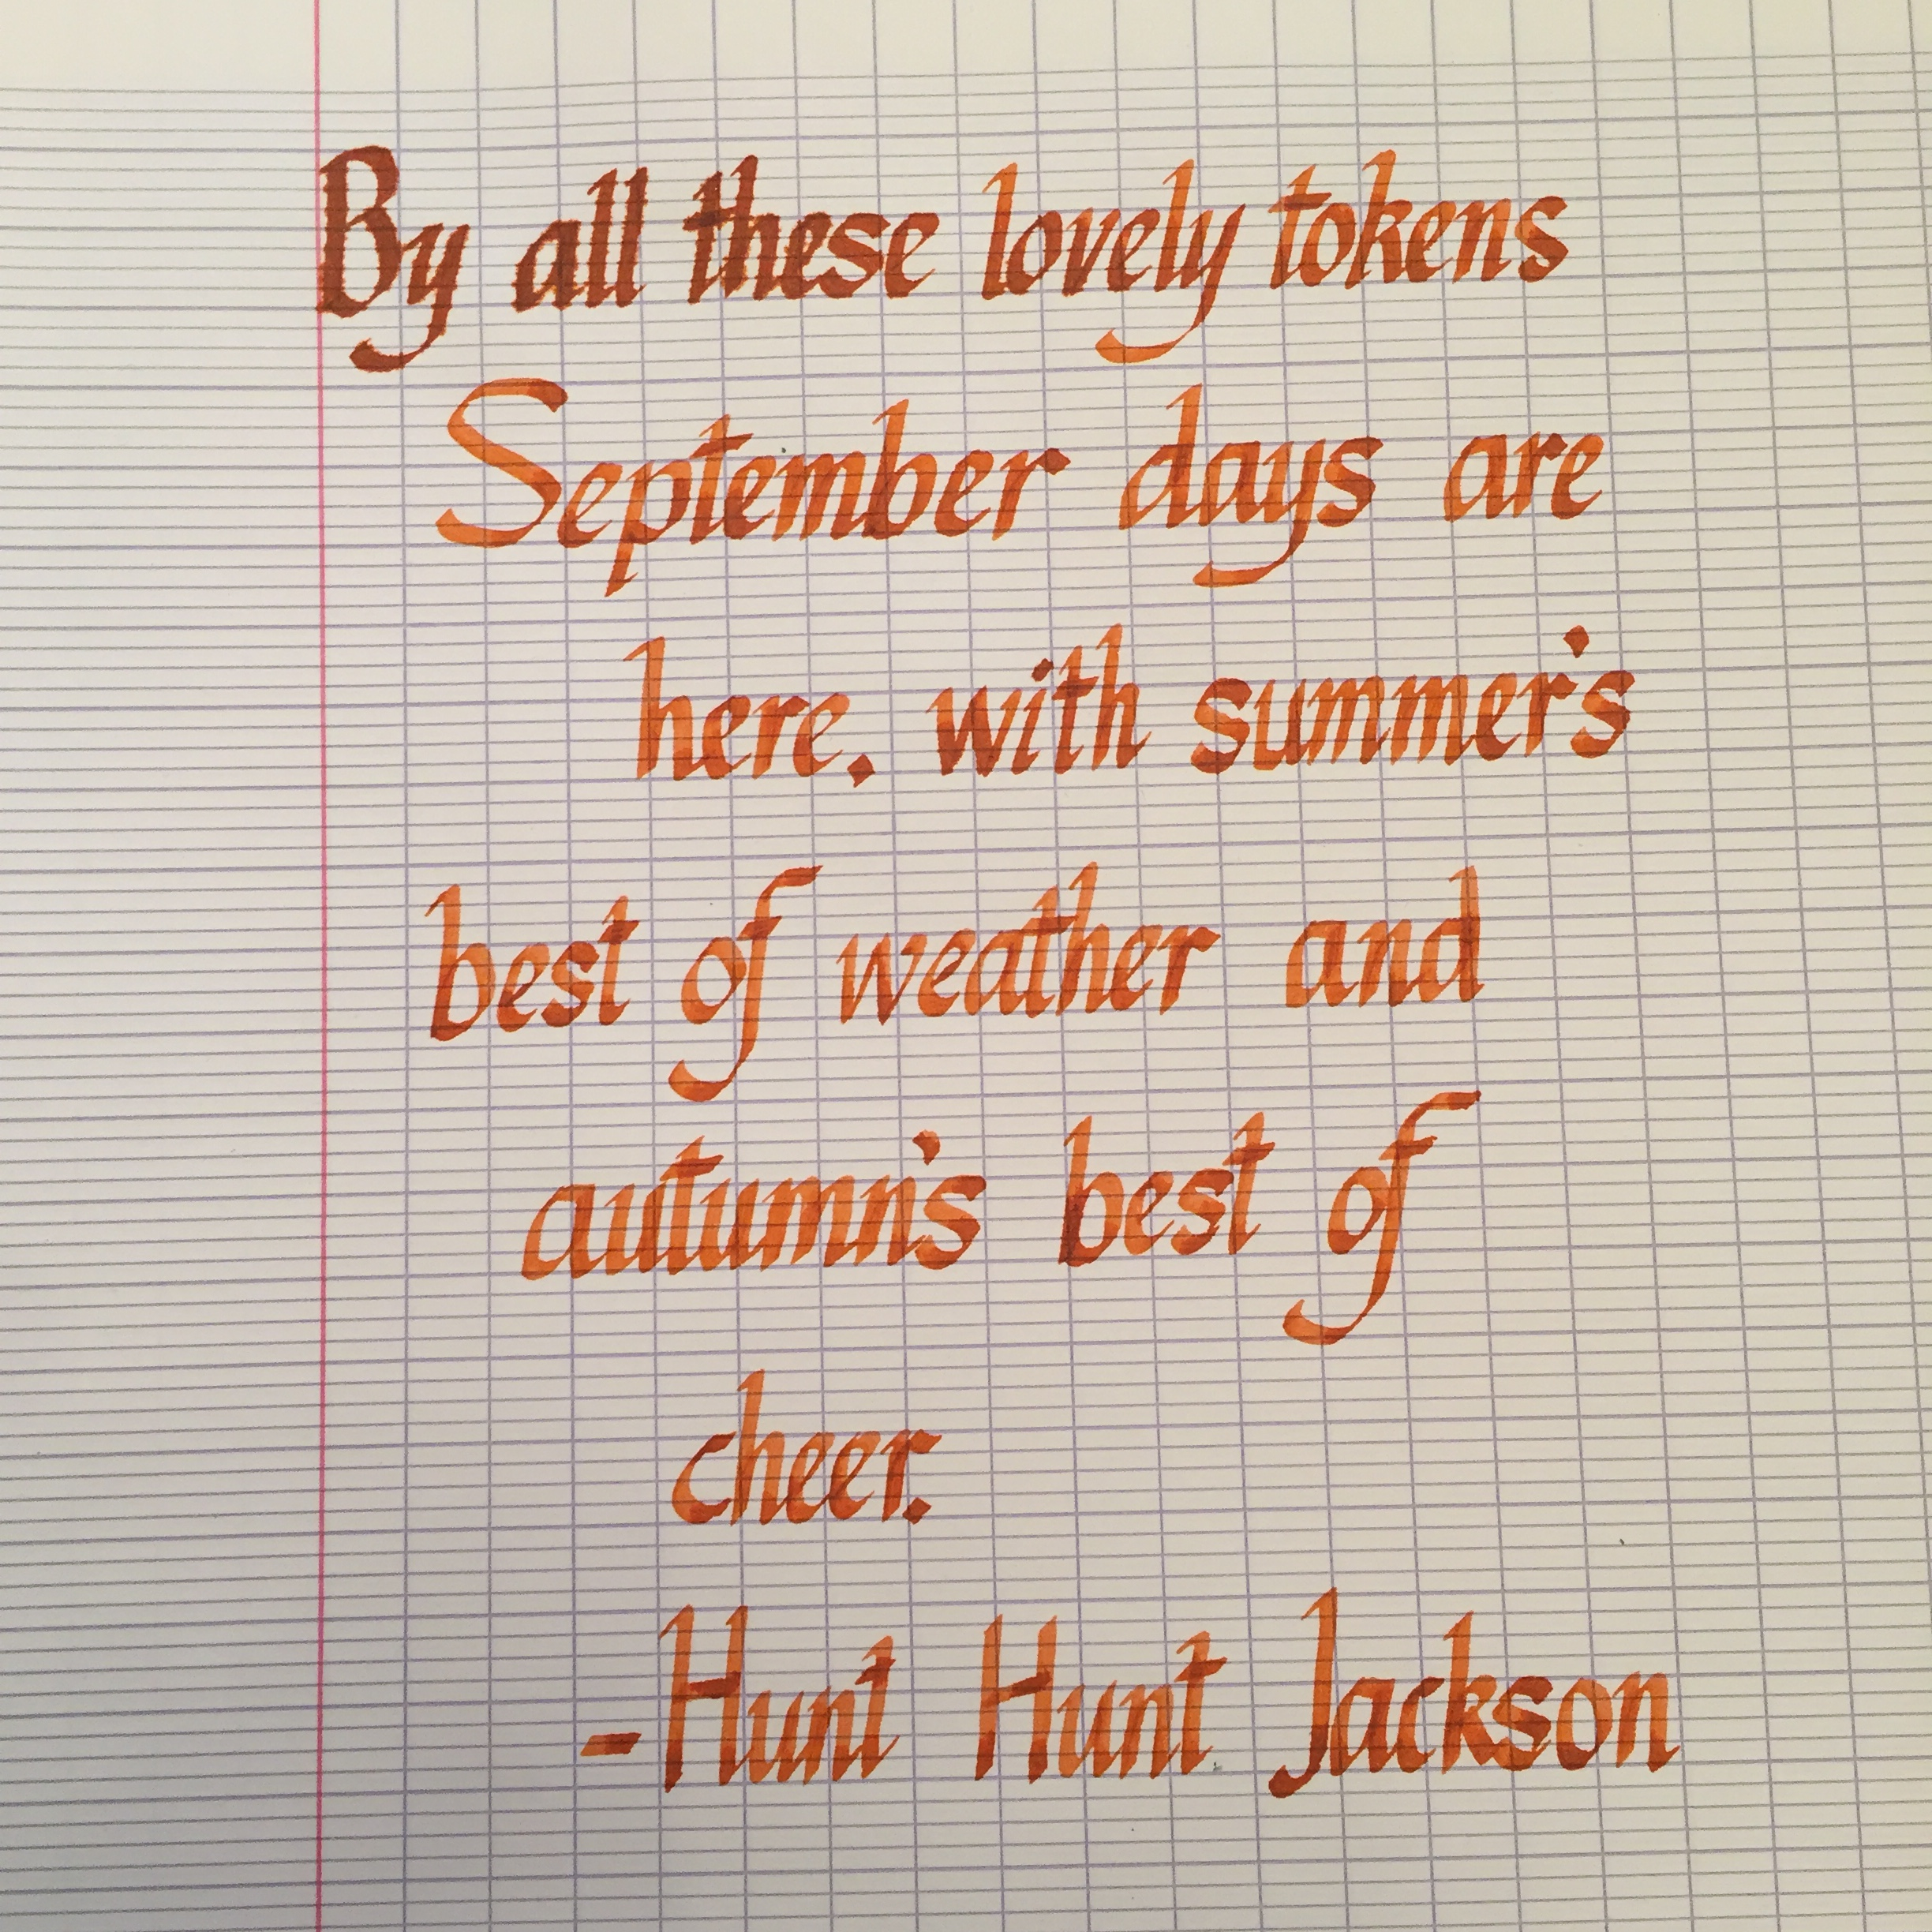 Italics Calligraphy is fun. (Done with a Pilot Parallels 2.8mm with Lamy Copper Orange ink on a Clairefontaine French Ruled notebook.)